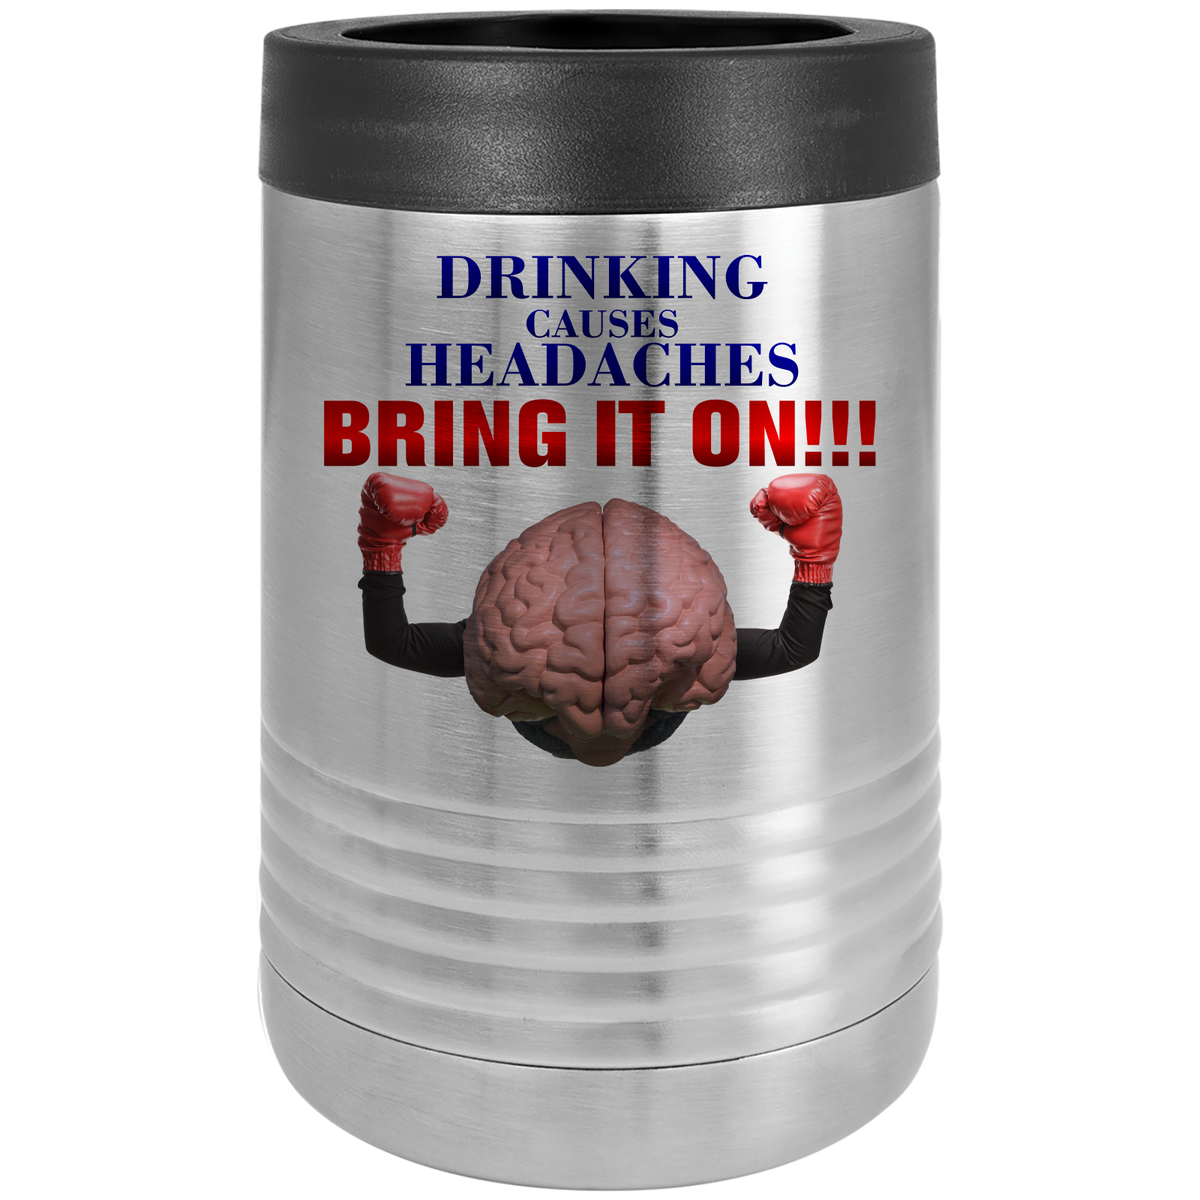 Drinking causes headaches, bring it on!!! - Beverage Holder